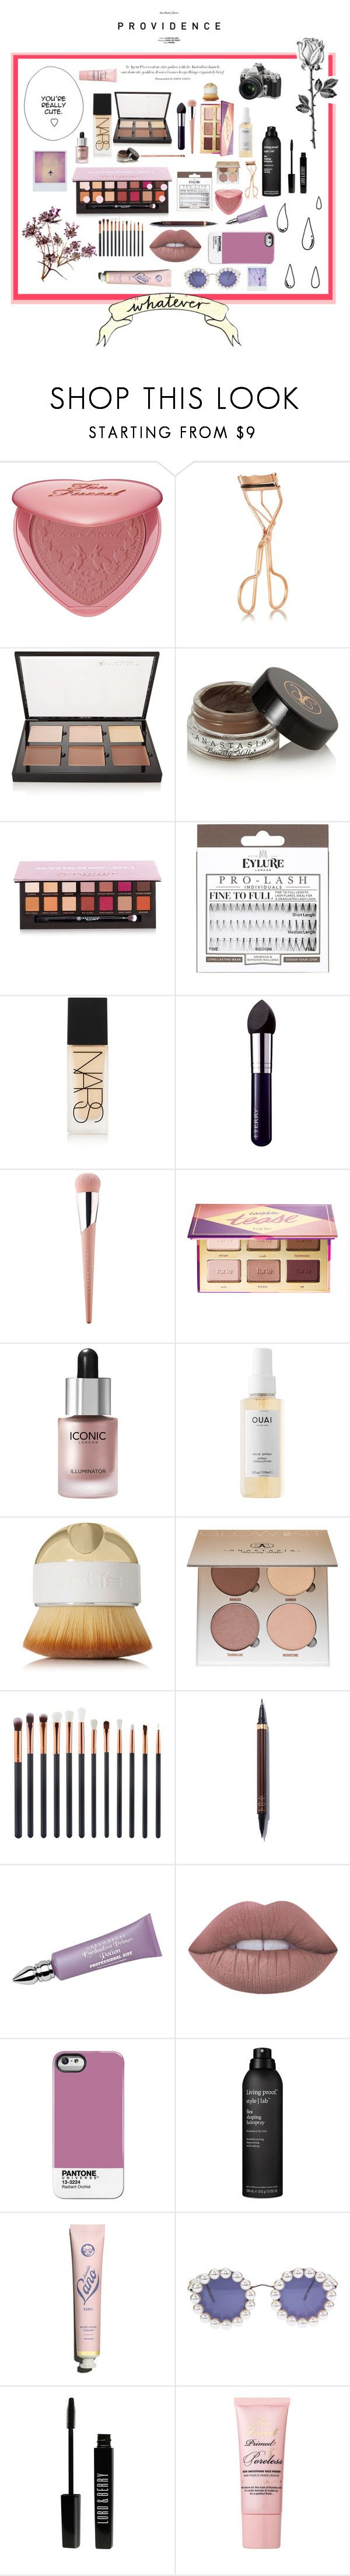 """""""Flowers Makeup"""" by theclairebeauty ❤ liked on Polyvore featuring beauty, Too Faced Cosmetics, ZOEVA, Charlotte Tilbury, Anastasia Beverly Hills, eylure, NARS Cosmetics, By Terry, Puma and tarte"""